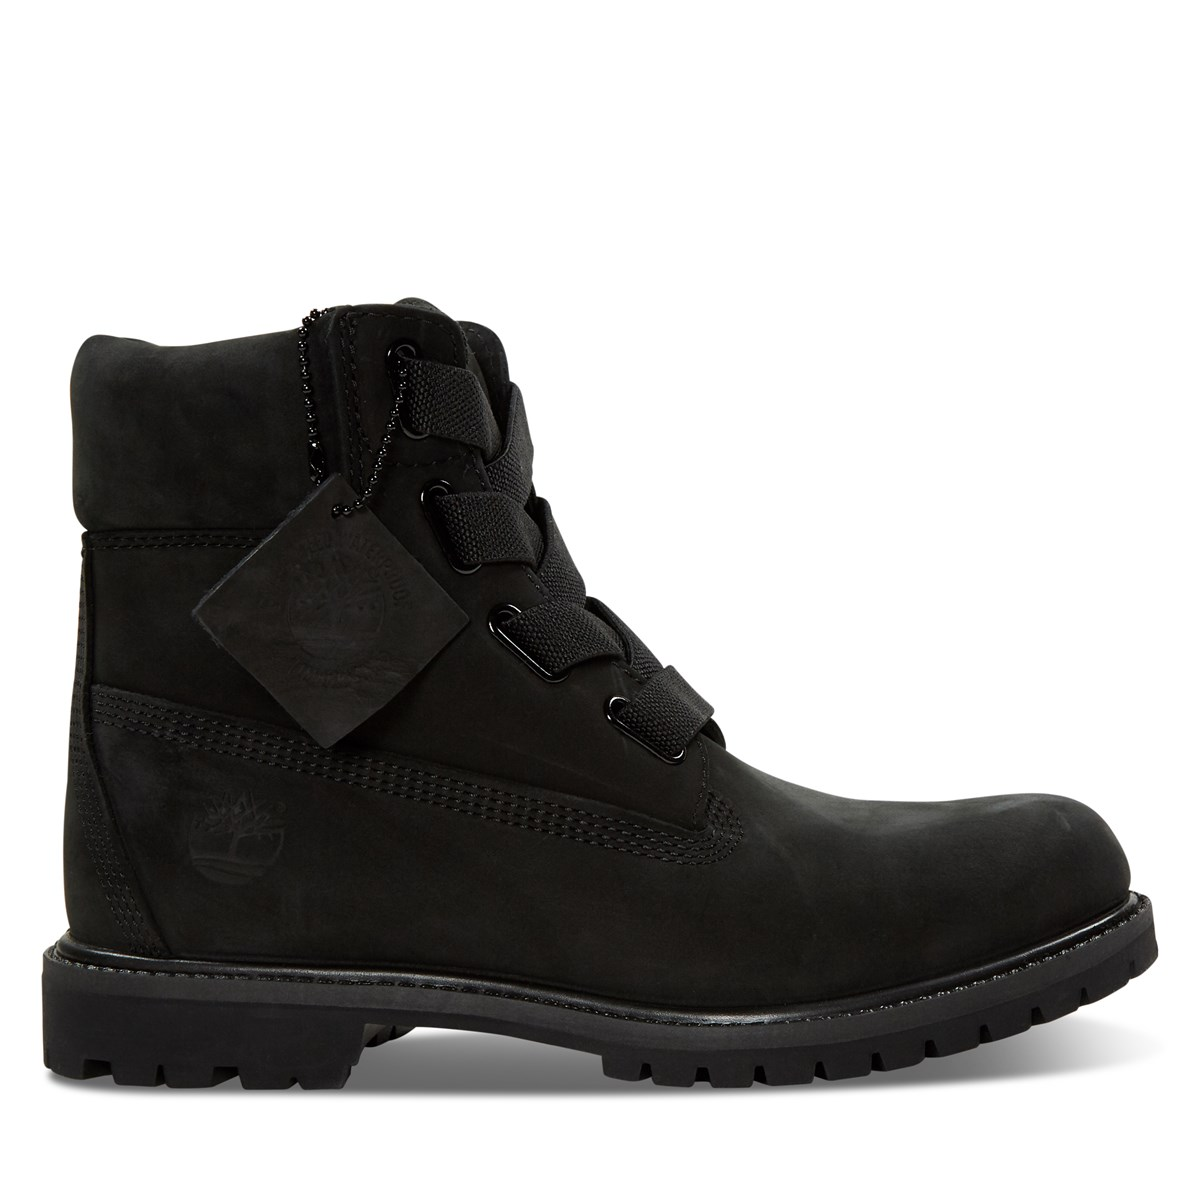 Women's 6-Inch Convenience Boots in Black